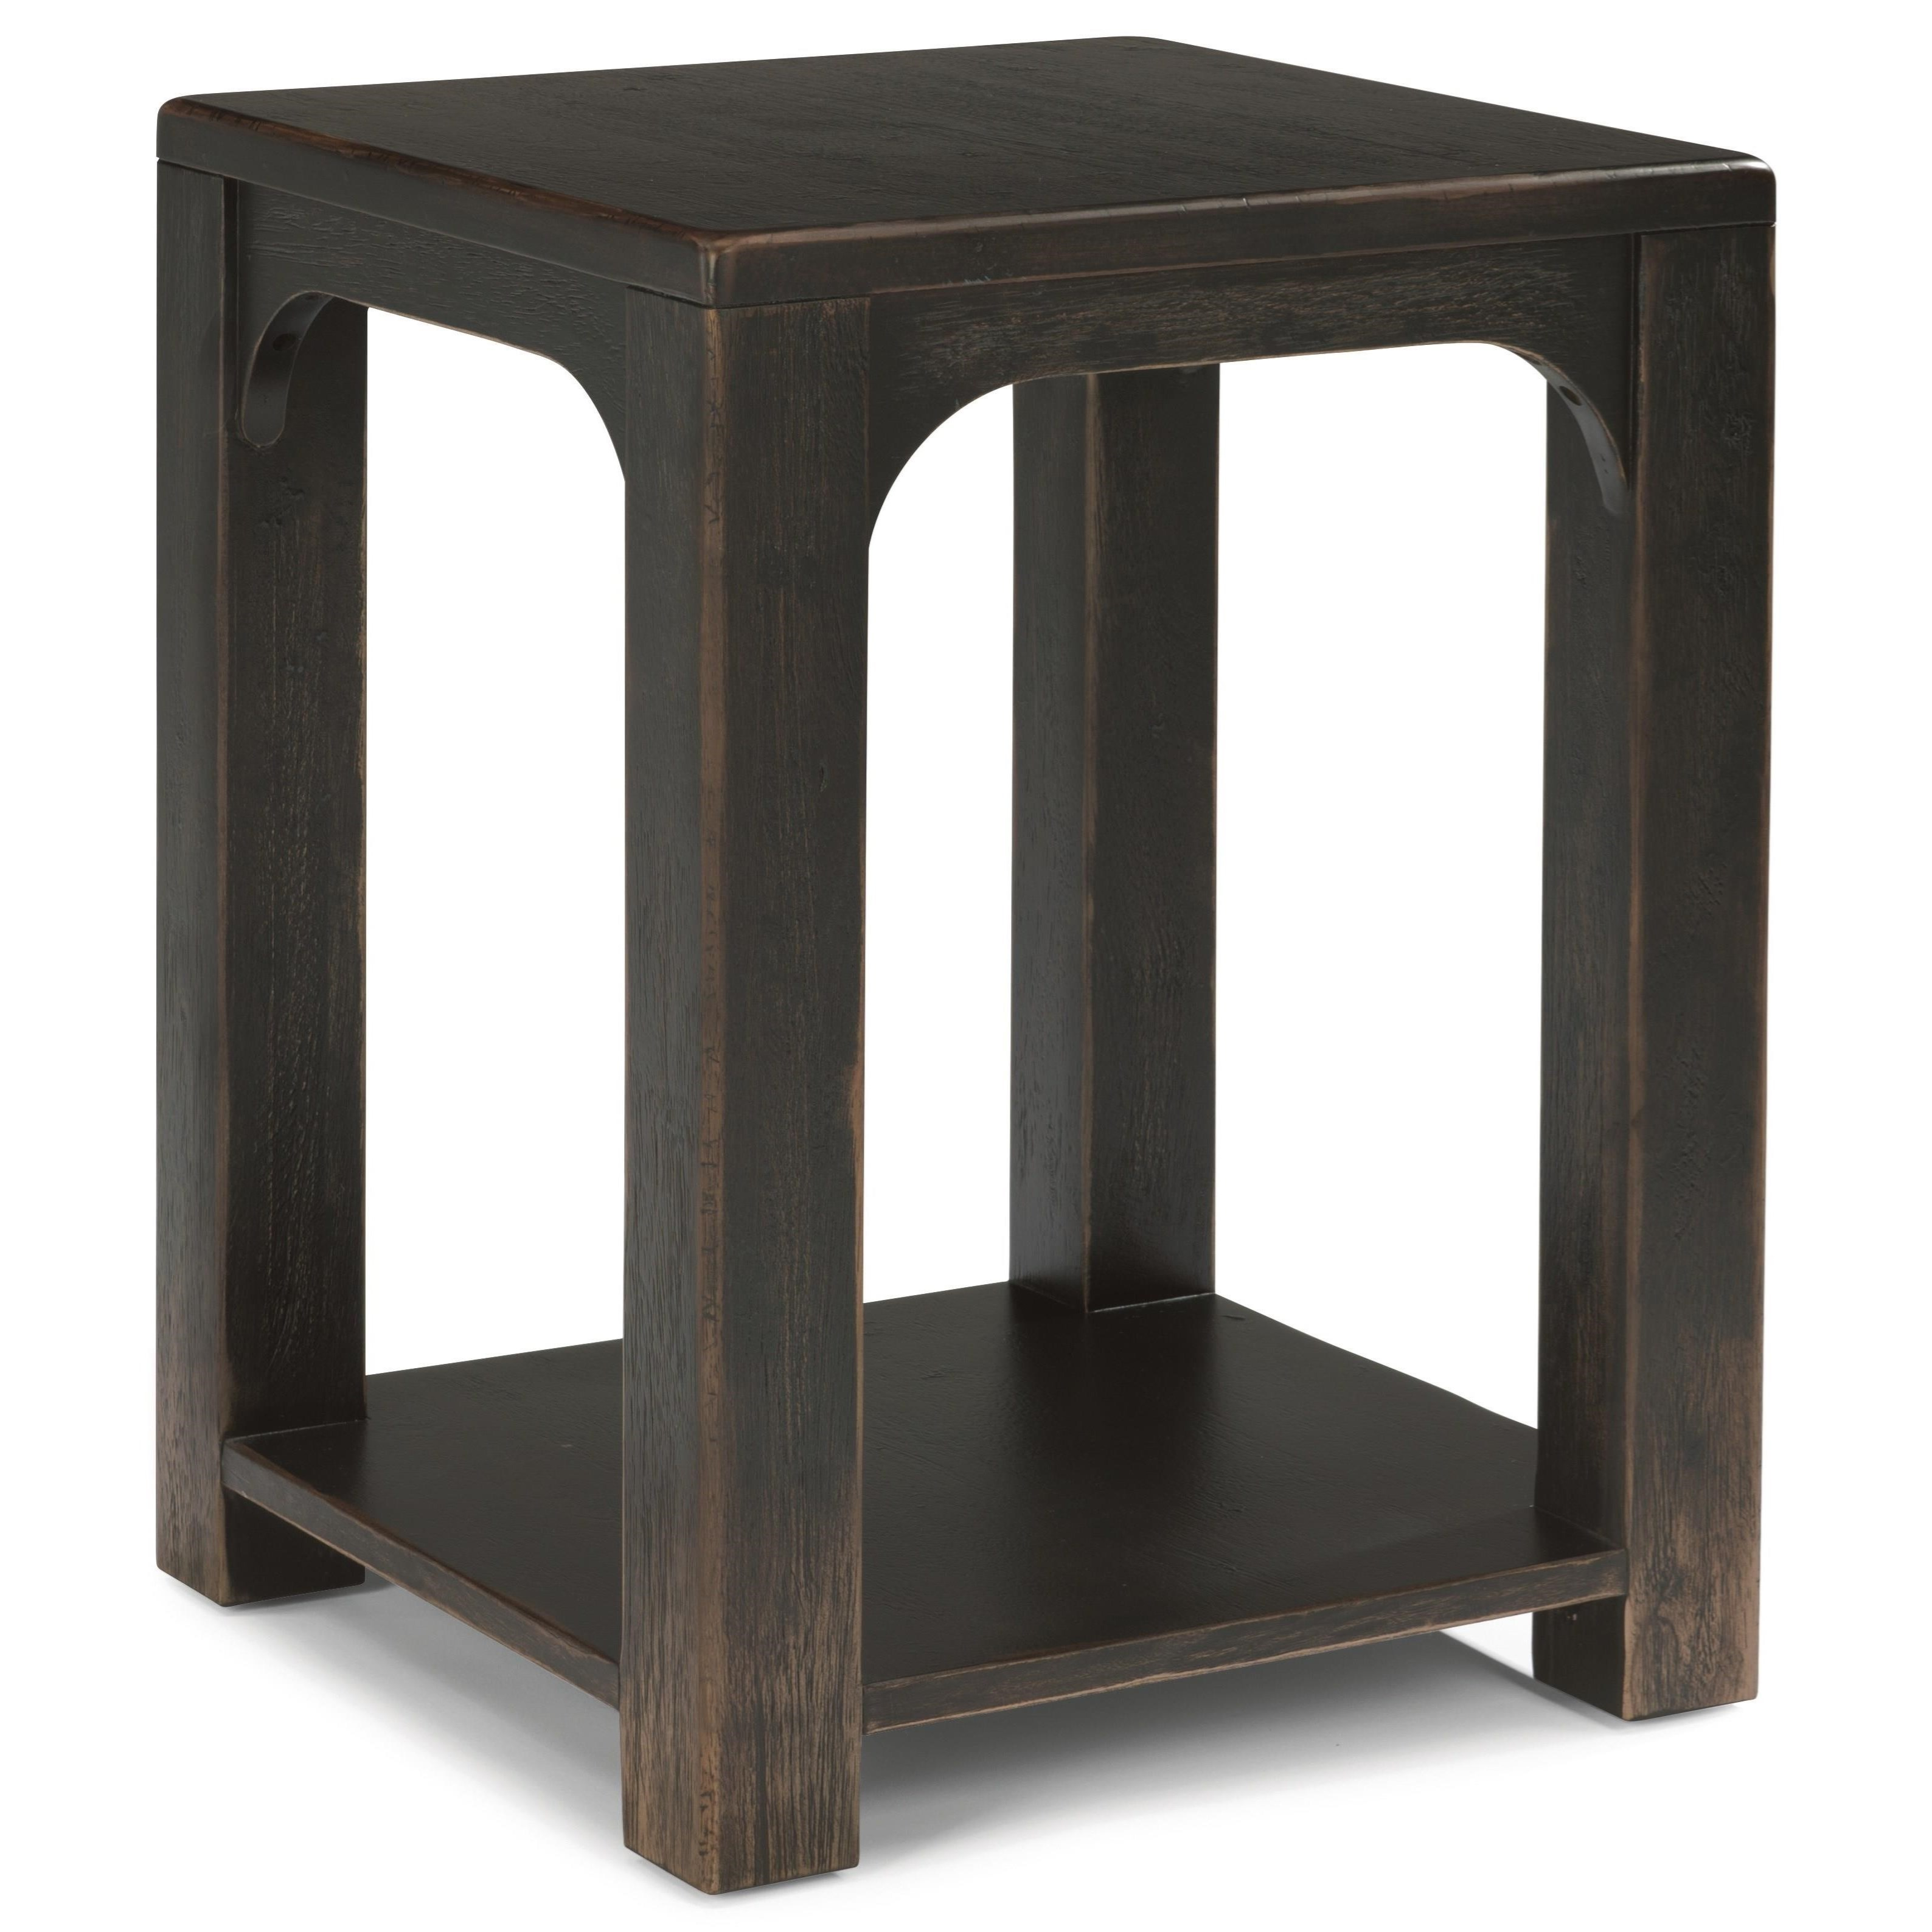 Flexsteel Wynwood Collection Homestead Rustic Chairside Table with